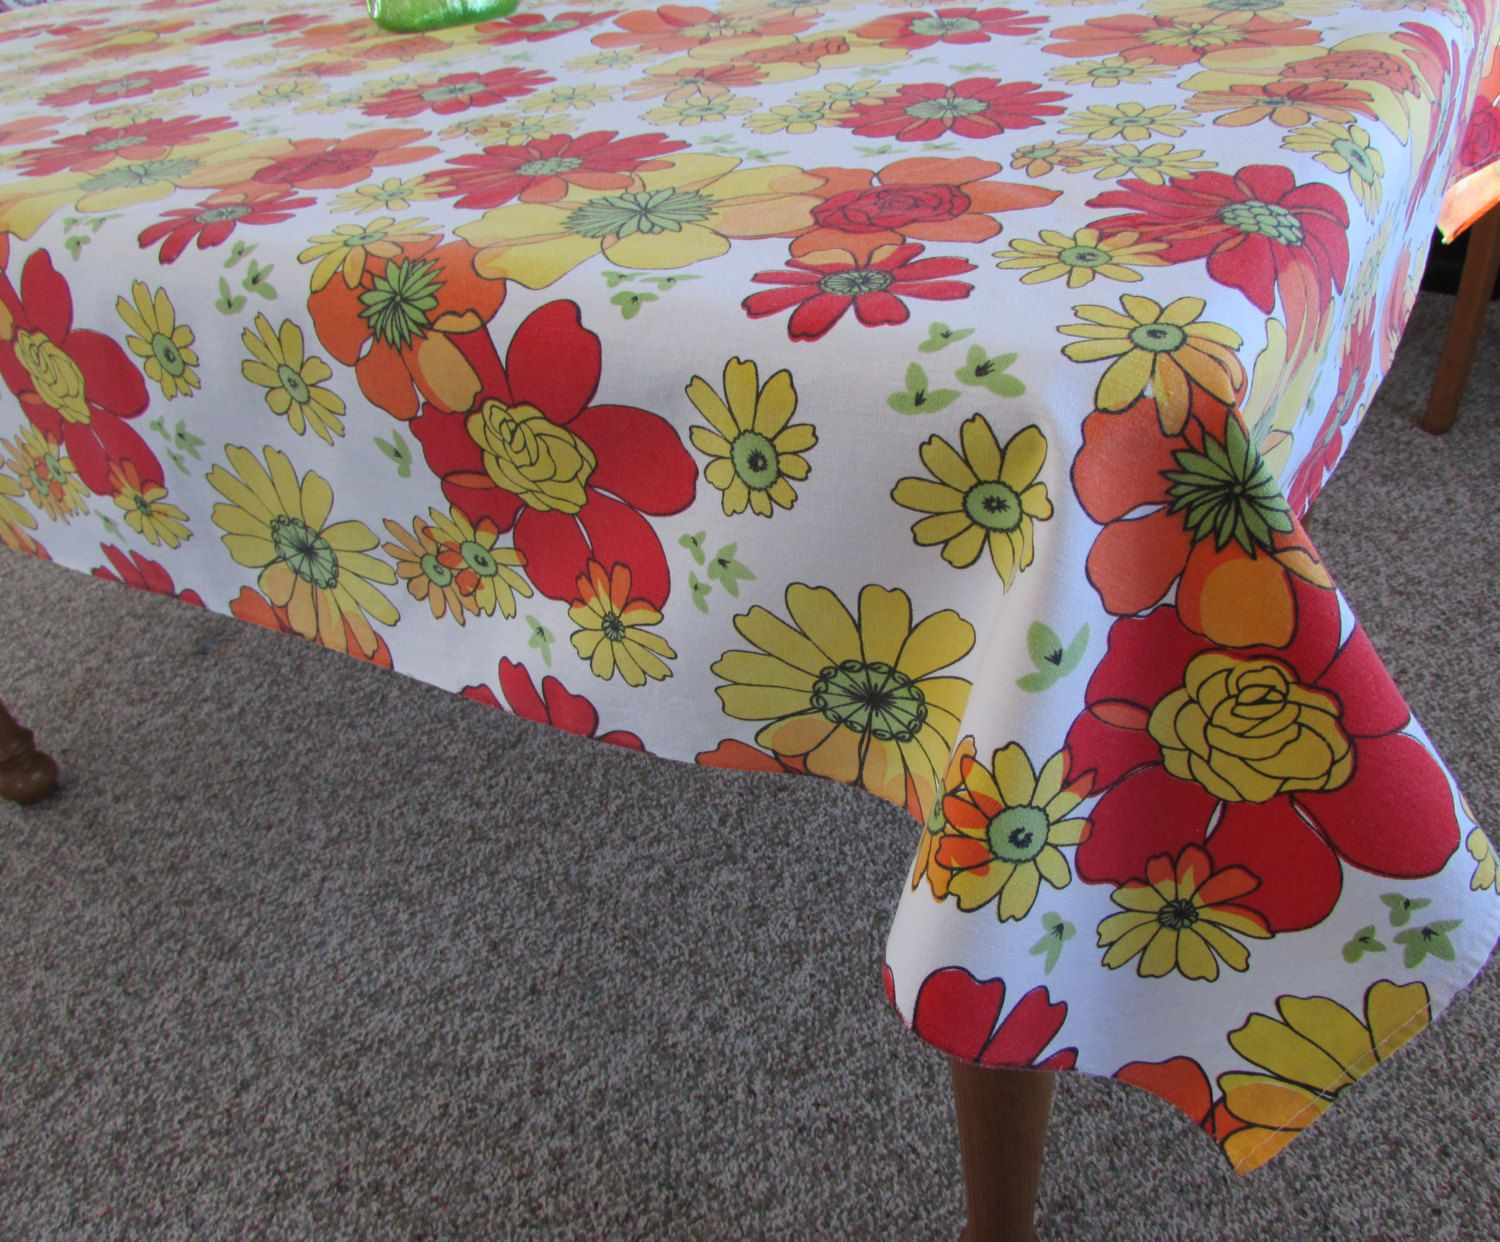 Large Vintage 70s Floral Tablecloth   Red, Yellow And Orange Flowers    Cotton Tablecloth   Retro Linen   Cutter Fabric   70s